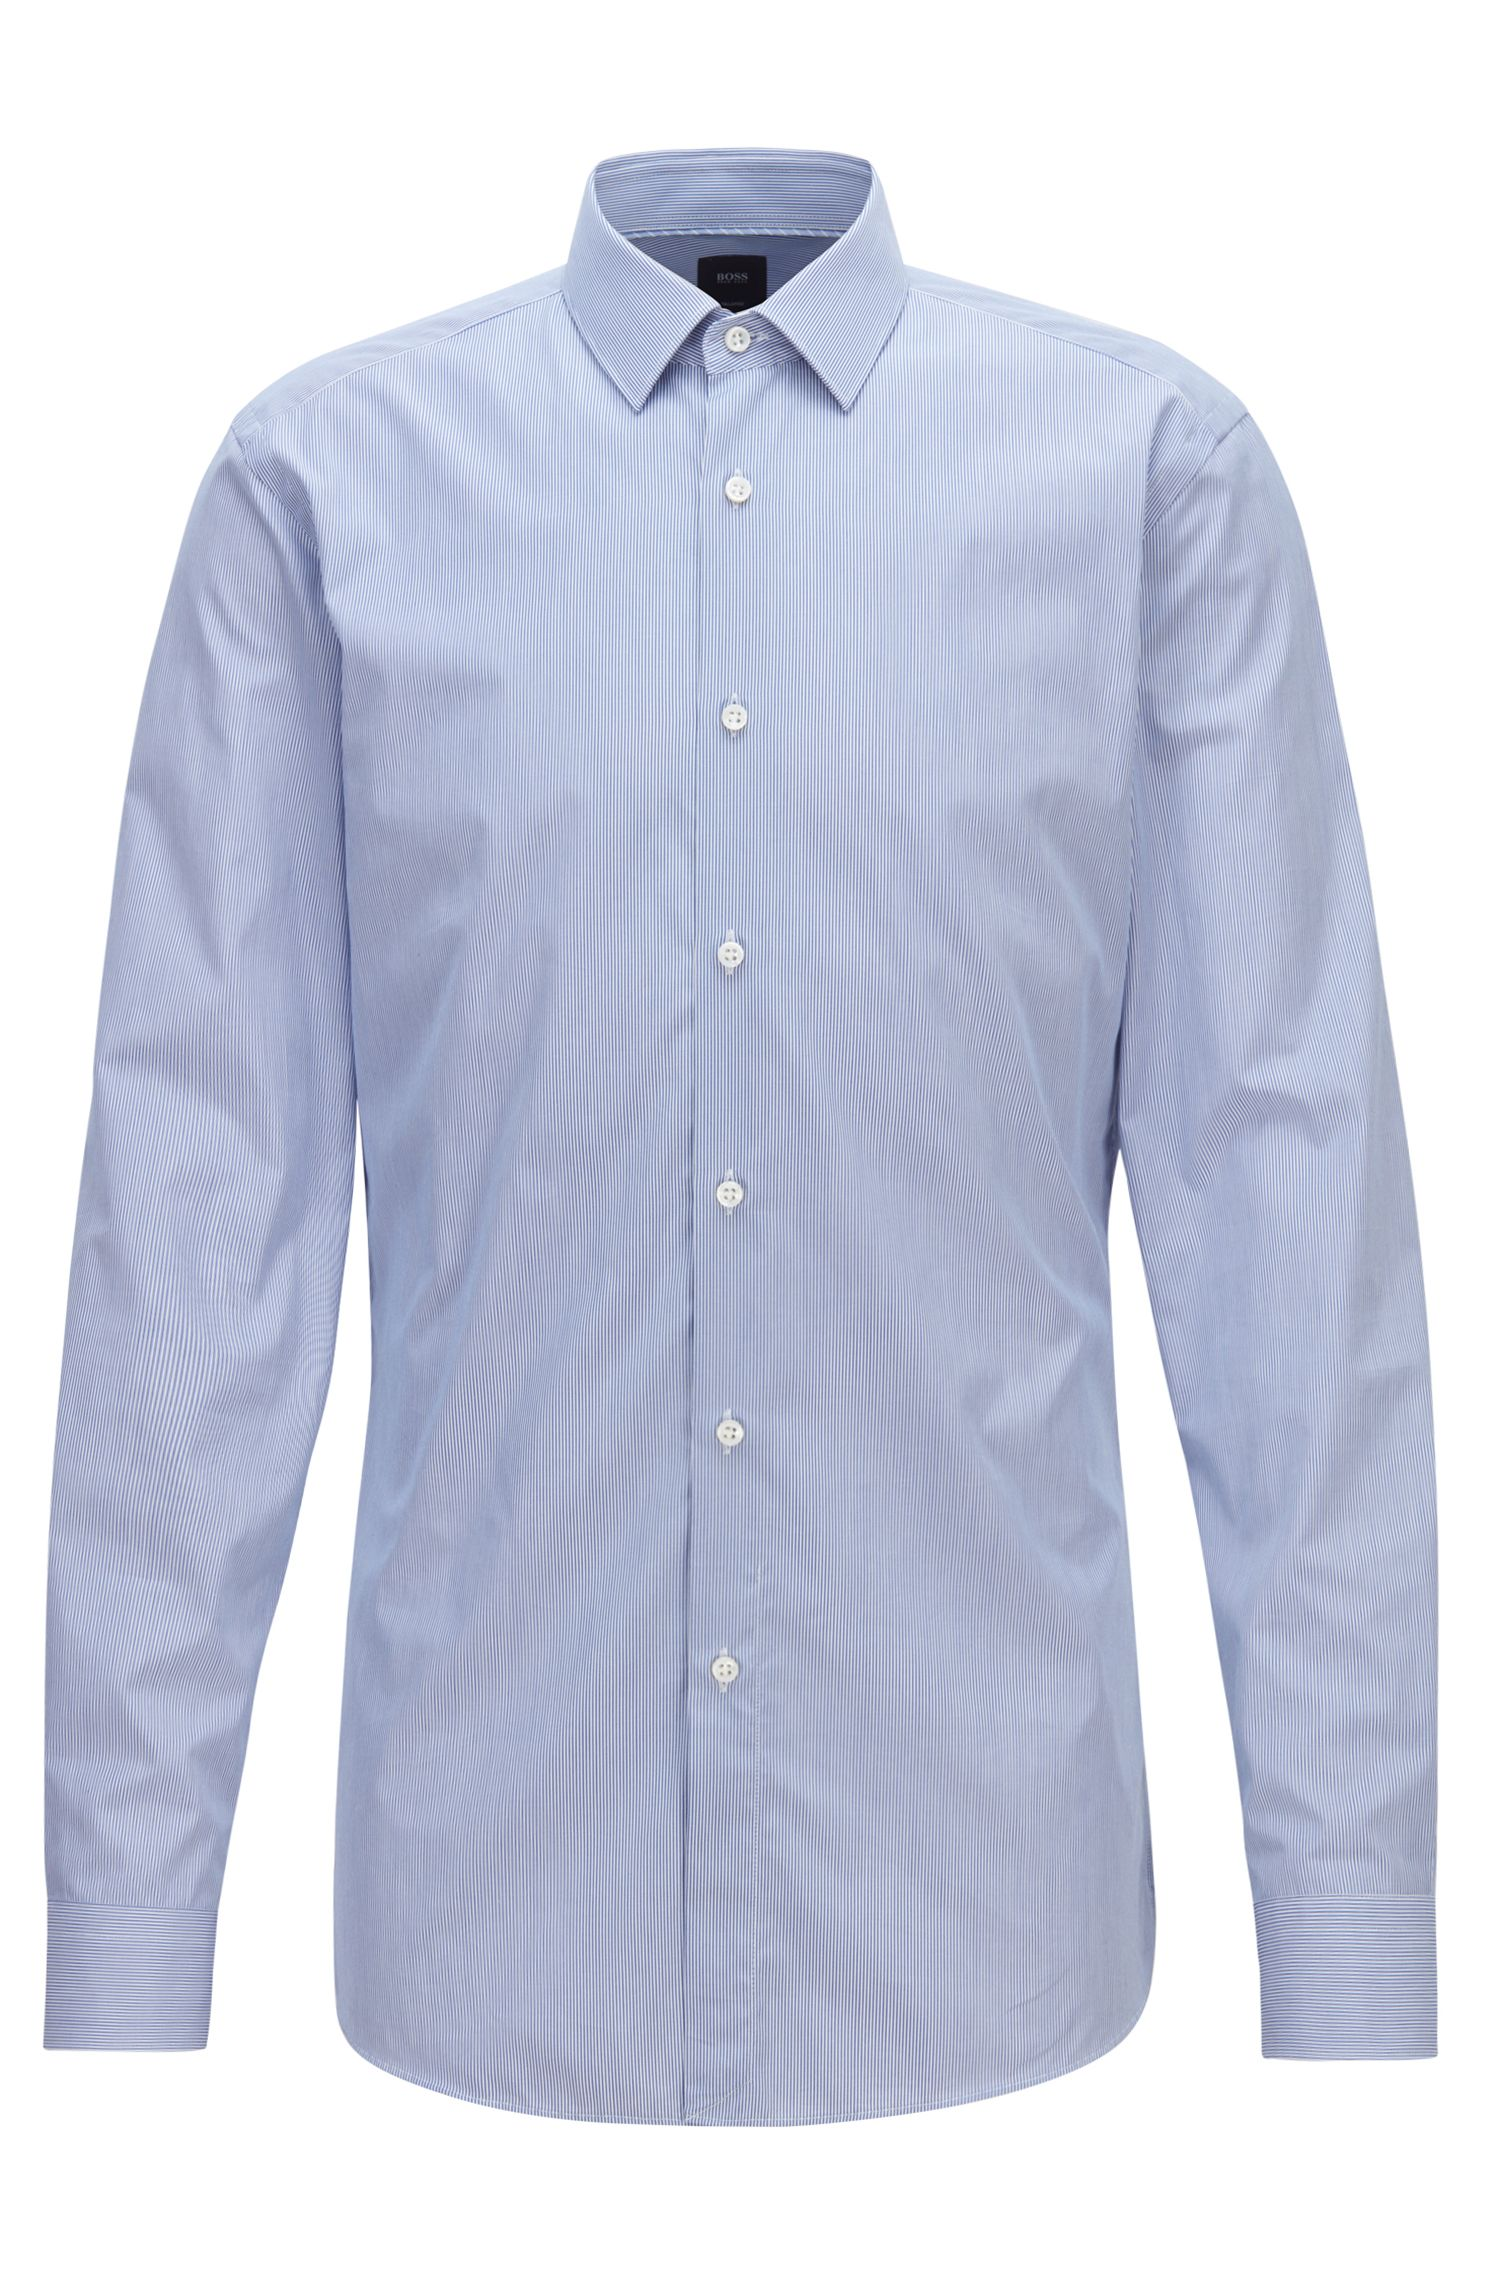 BOSS Tailored slim-fit shirt in striped Italian cotton, Blue